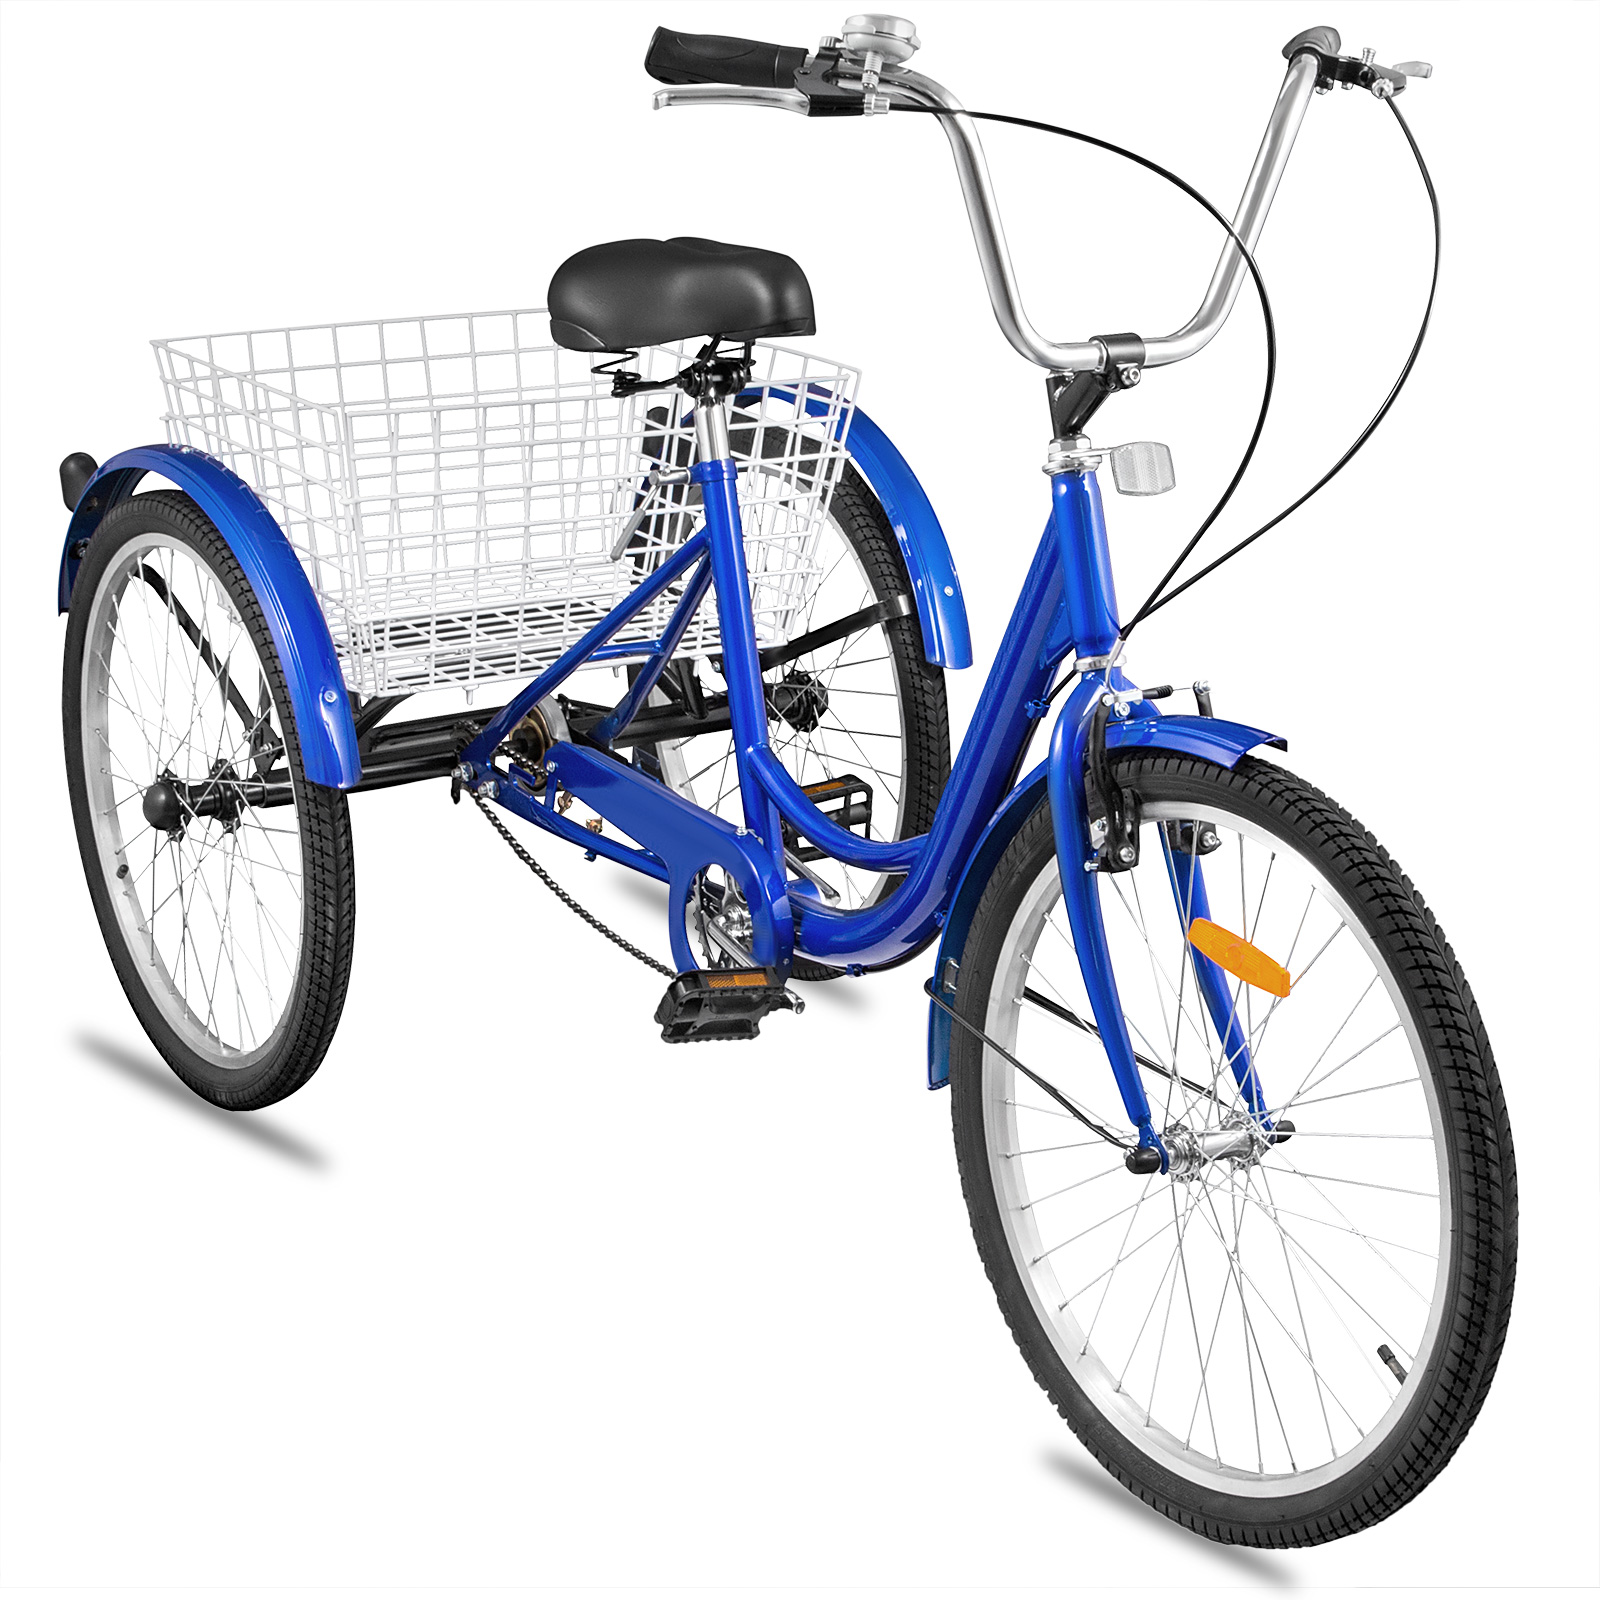 20-24-26-034-Adult-Tricycle-1-7-Speed-3-Wheel-Large-Basket-For-Shopping-Optional thumbnail 105